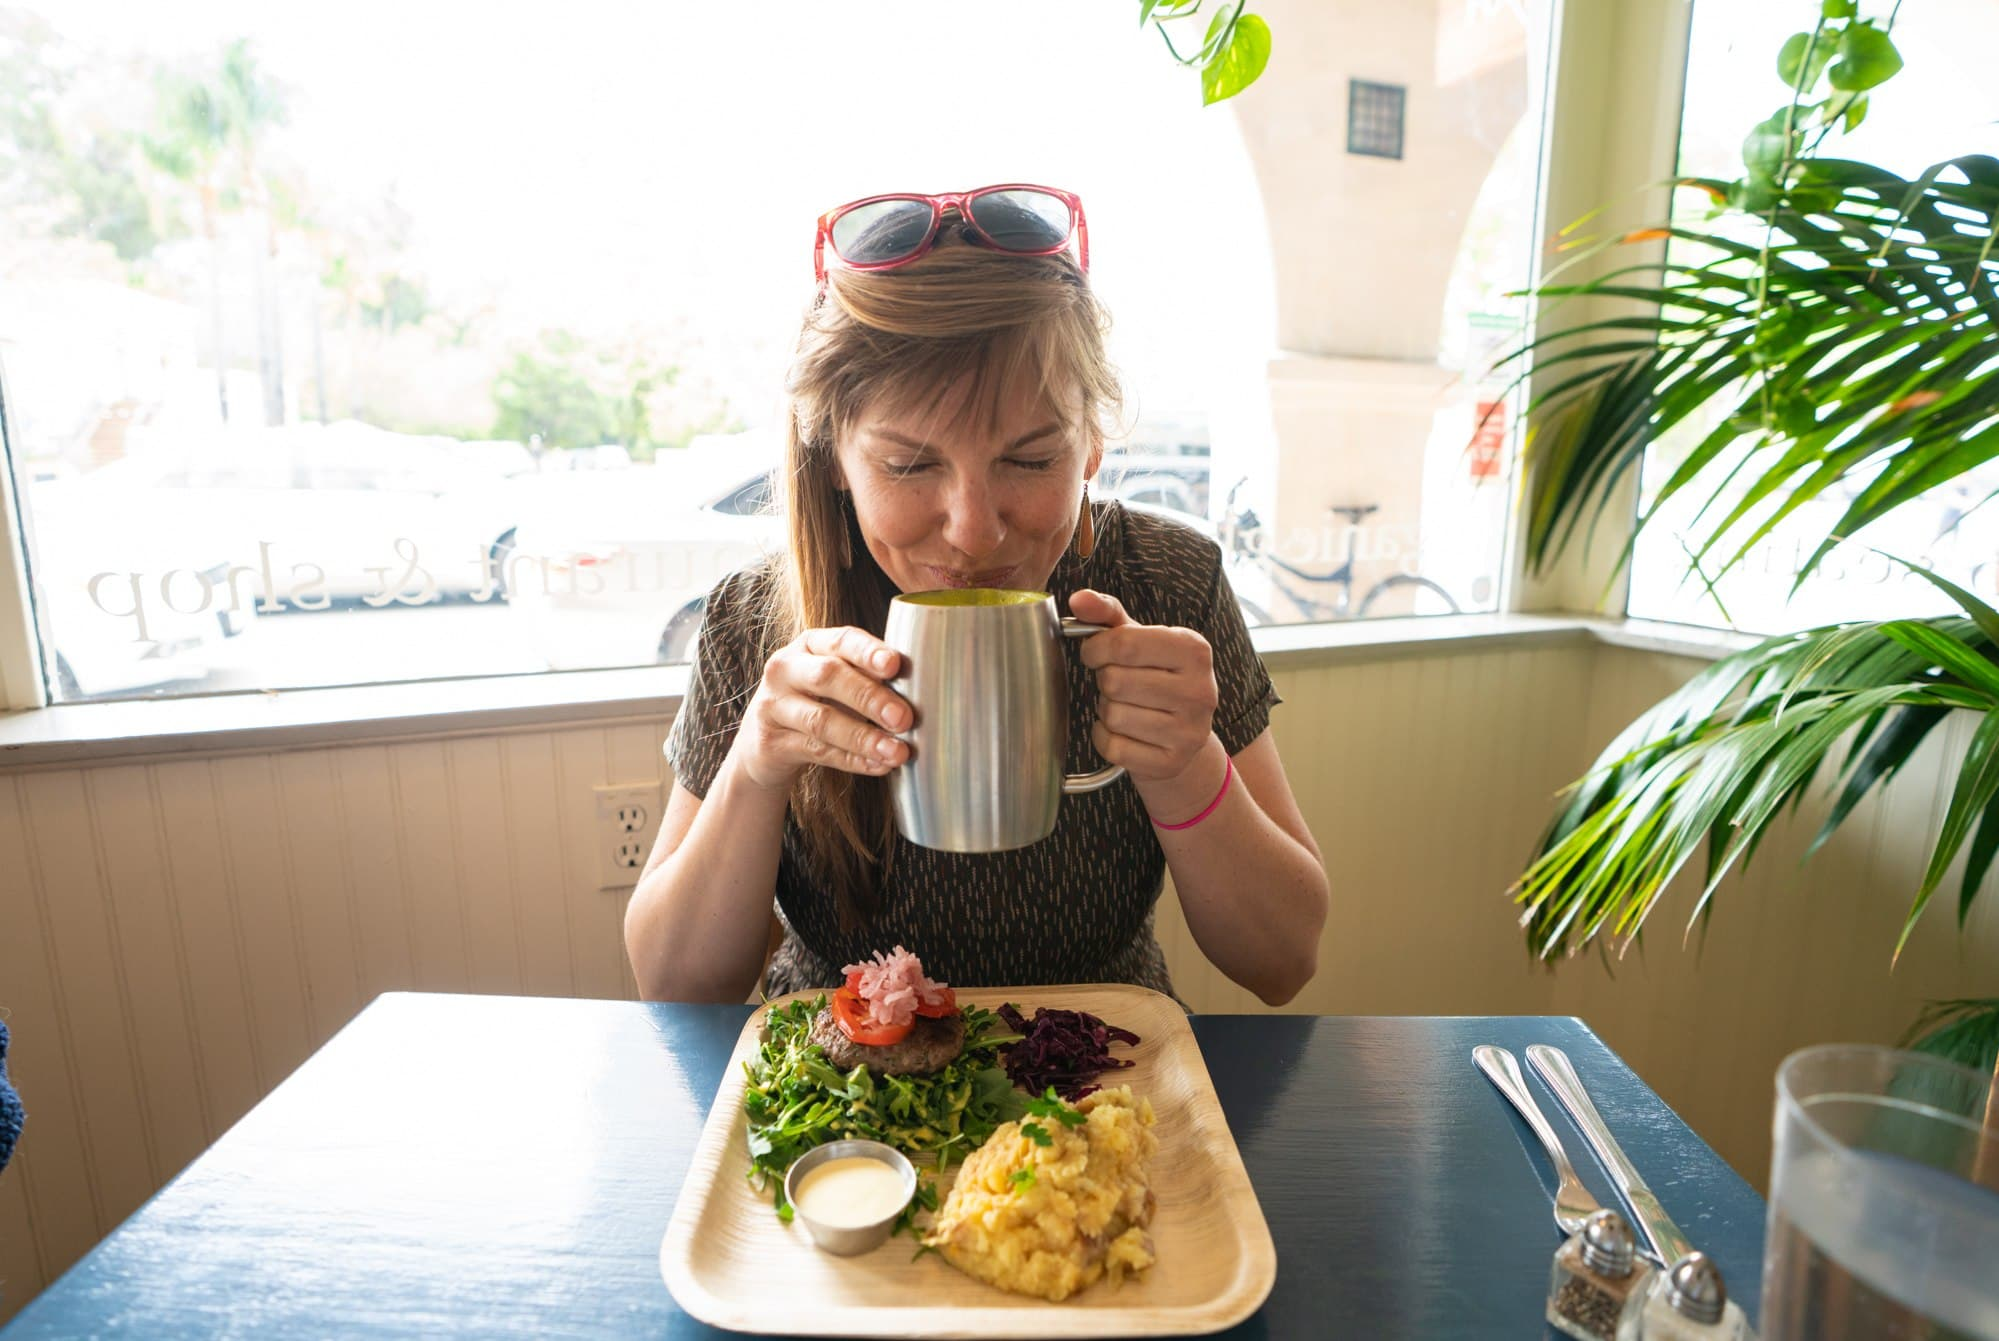 Lunch at Food Harmonics in Ojai // A 6 day california coast road trip itinerary that combines outdoor adventure travel and local California beach town culture.